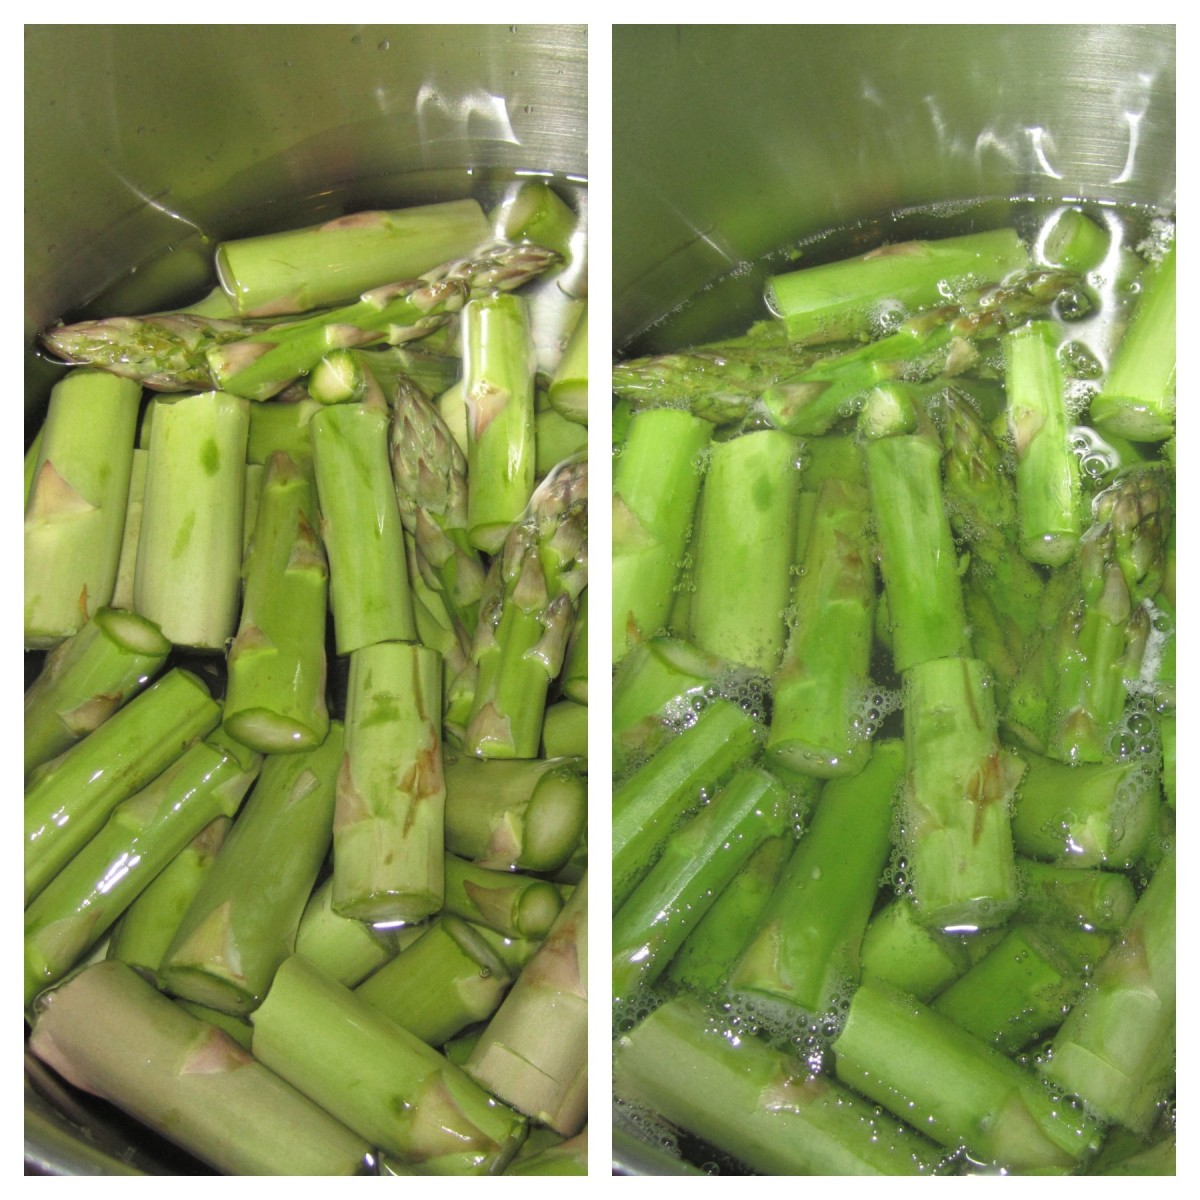 Left: Asparagus places in water uncooked. Right: Asparagus after being boiled. You will be able to tell when it's done because it will turn a vibrant green color.